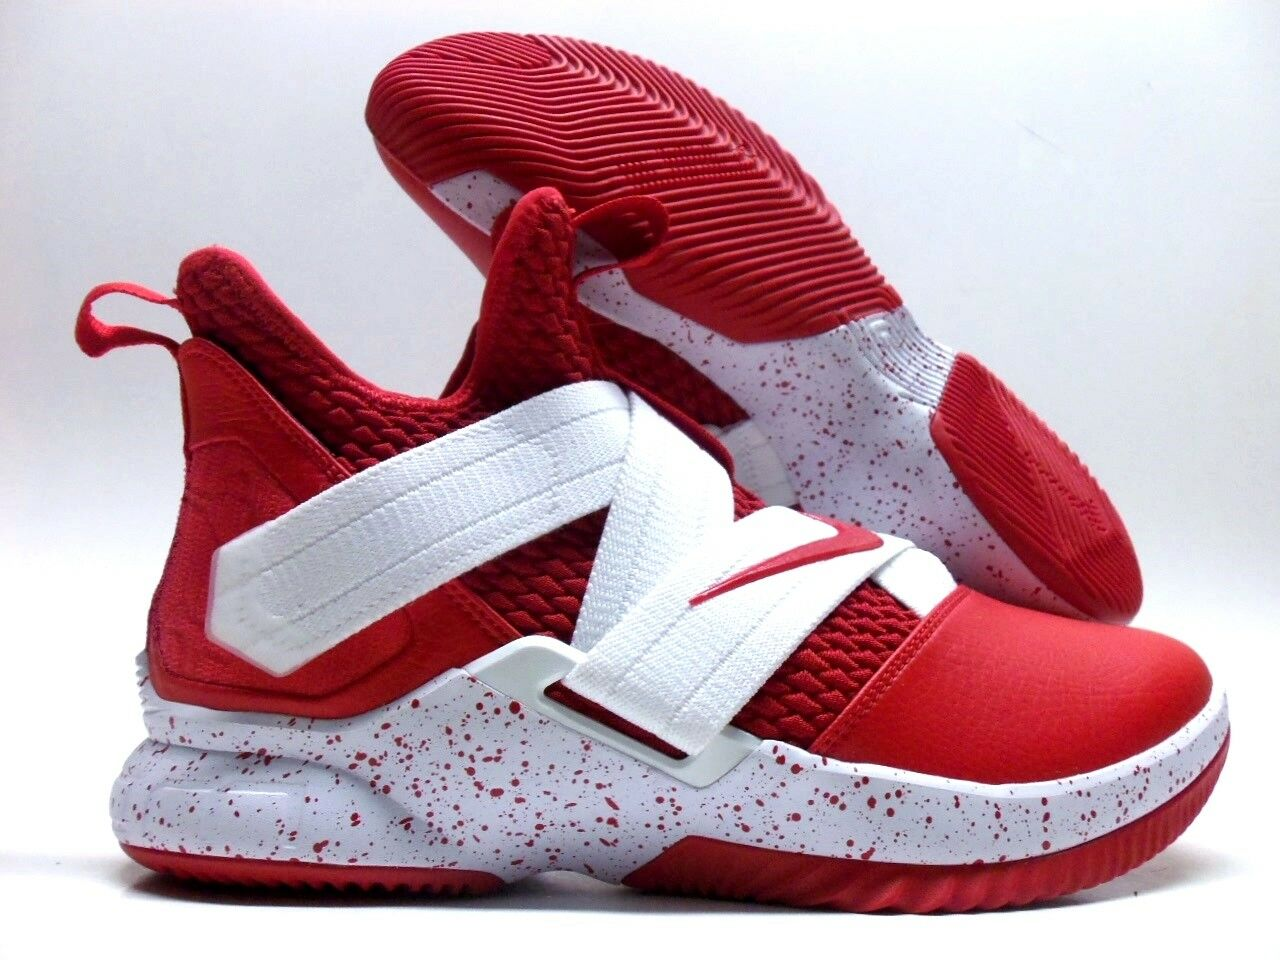 NIKE LEBRON SOLDIER XII 12 ID SPORT RED WHITE SIZE MEN'S 9 [AR6333-991]